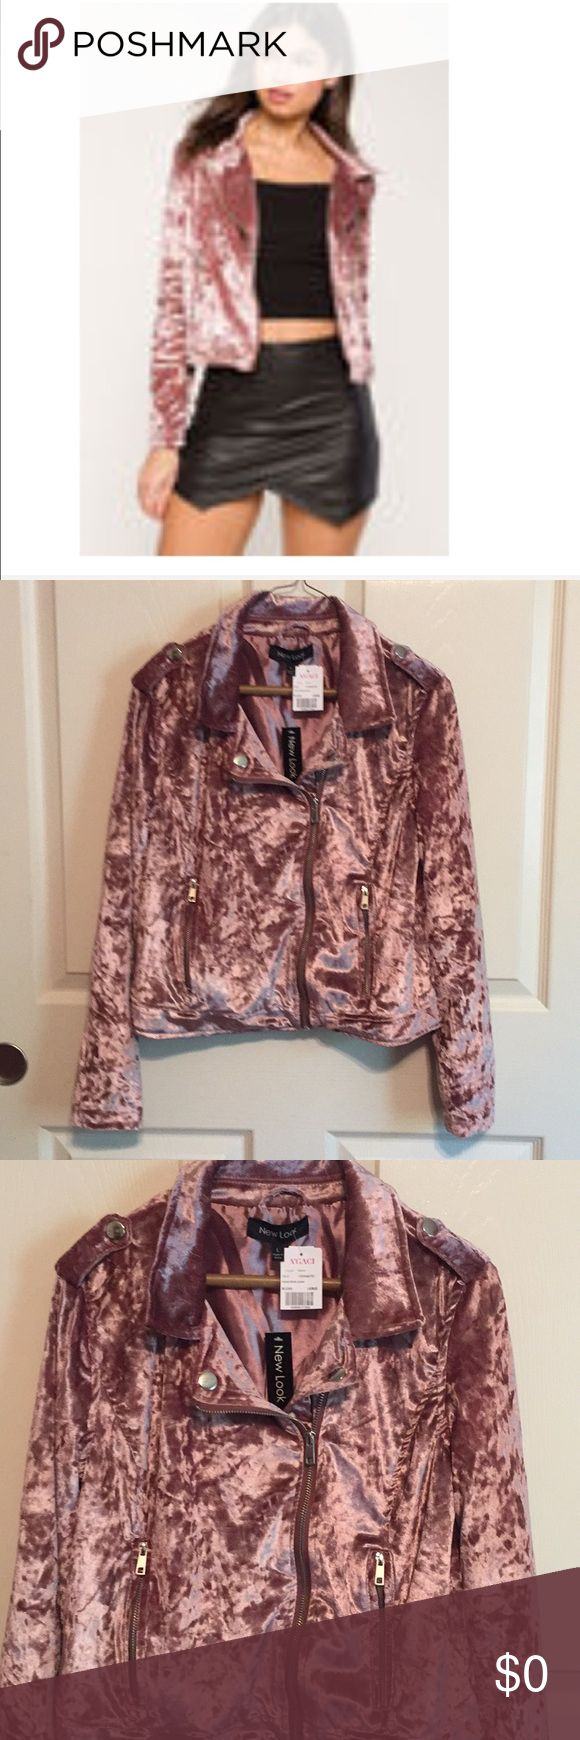 Addt'l pics of blush velvet moto jacket 🧥 NWT Brand New